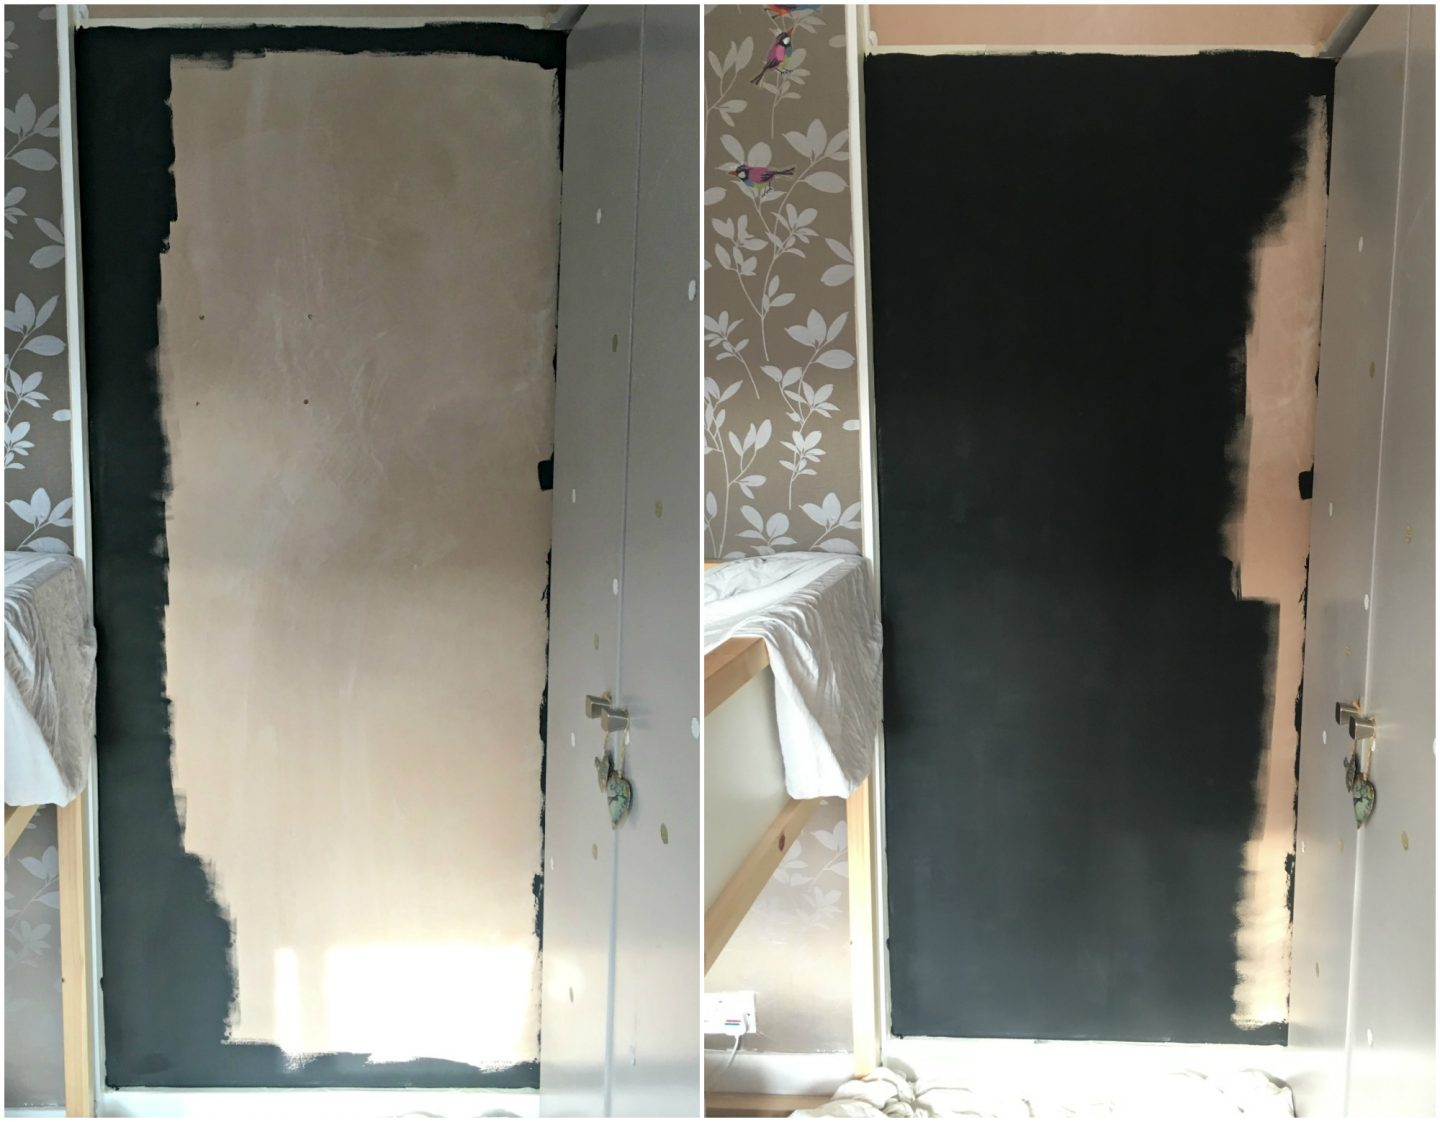 How to make a magnetic chalkboard wall - work in progress